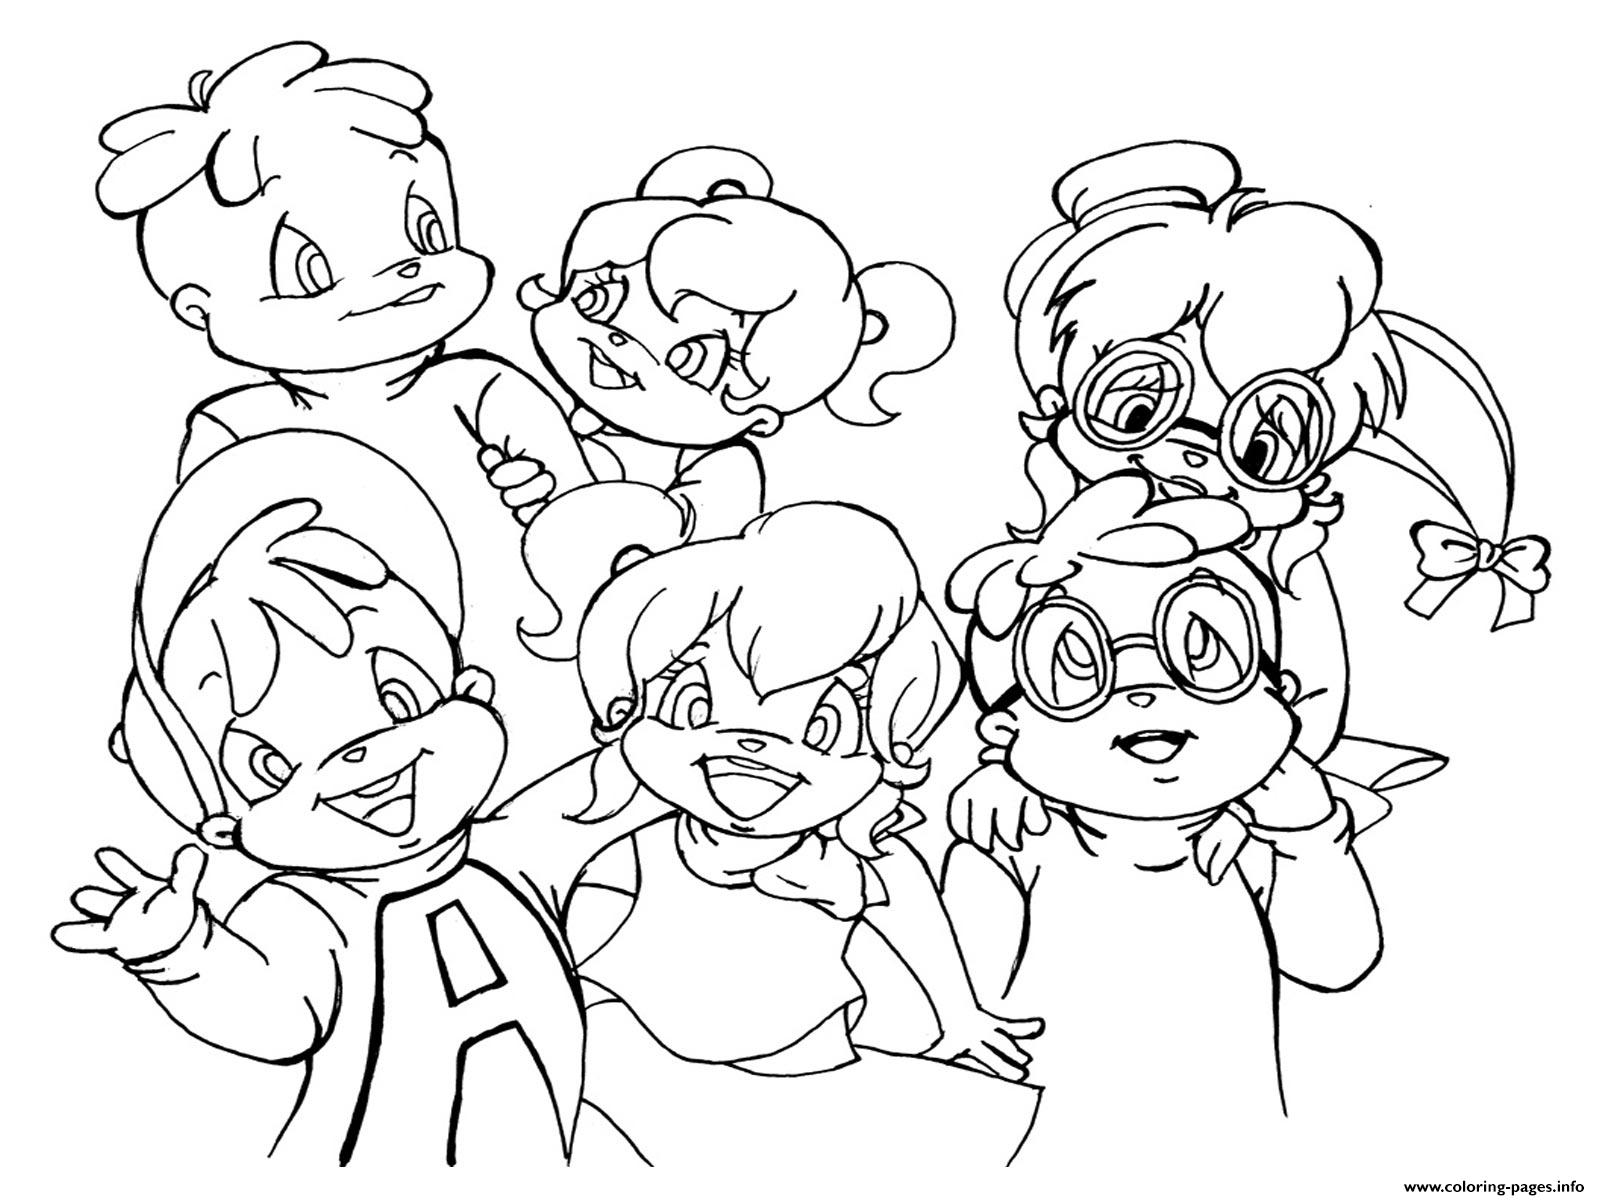 chipmunks coloring pages free - alvin and the chipmunks and chipettes s8fa2 coloring pages